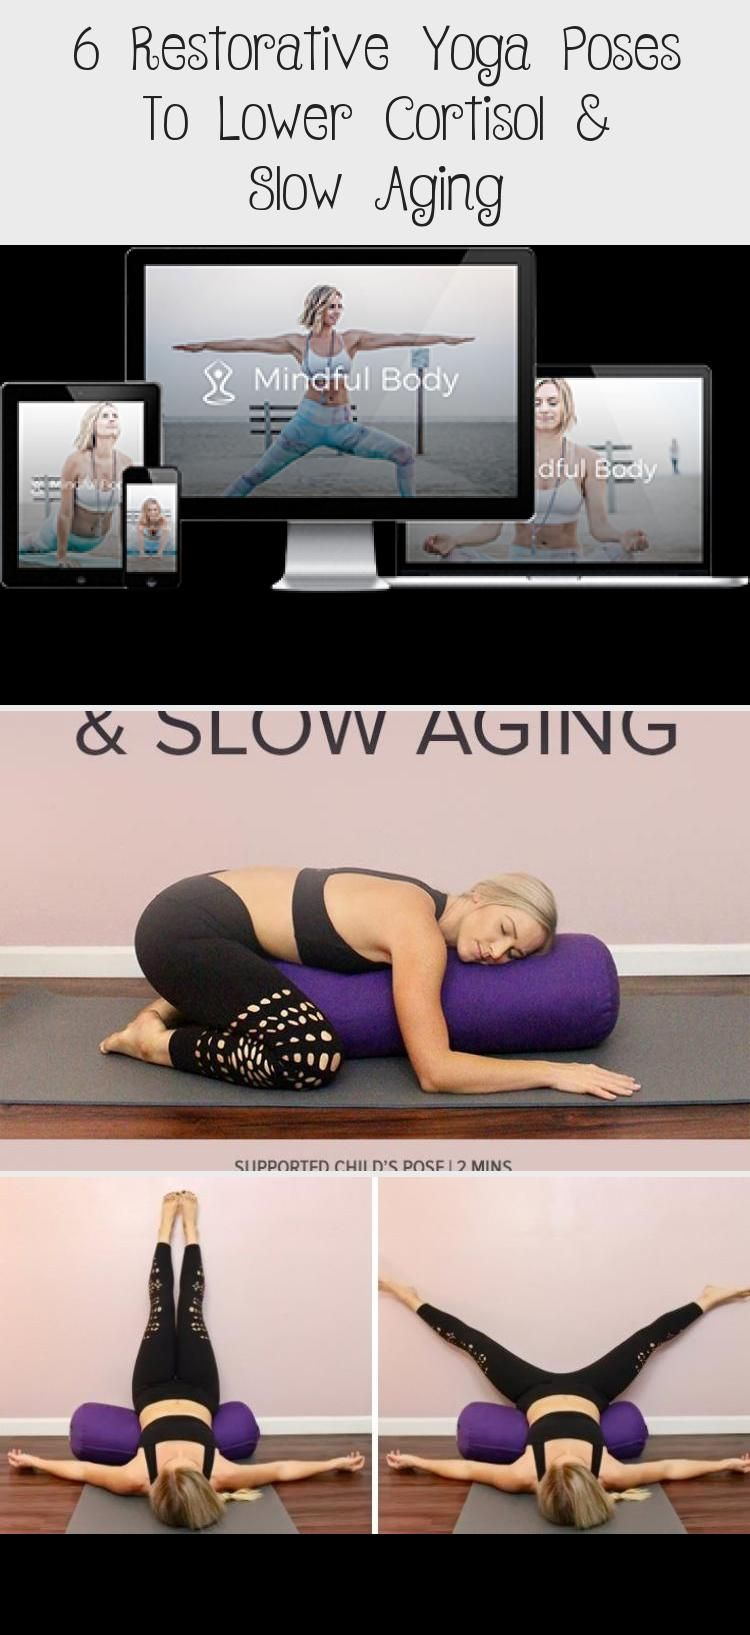 6 Restorative Yoga Poses To Lower Cortisol Slow Aging Gentle Easy Restorativeyogaposes Yogapose Restorative Yoga Poses Restorative Yoga Crazy Yoga Poses